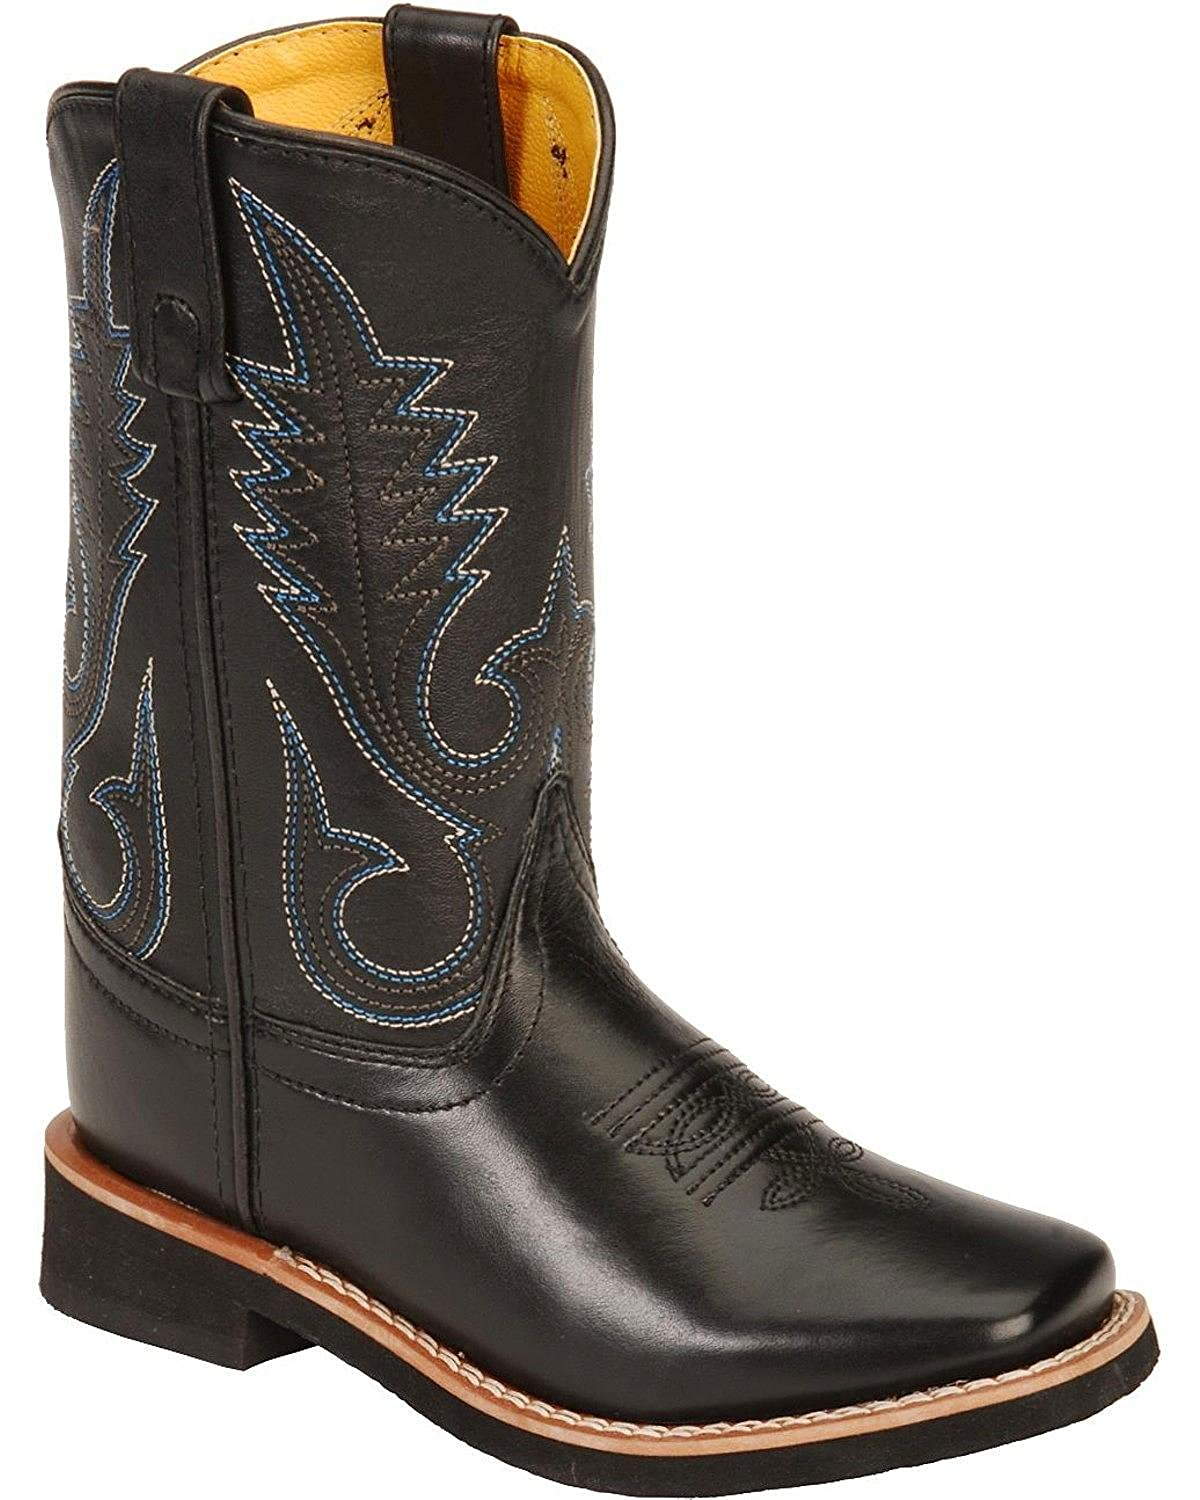 3d5cbaea119 Smoky Mountain Boots Youth Boys Judge Black Leather Square Toe 5.5 D ...